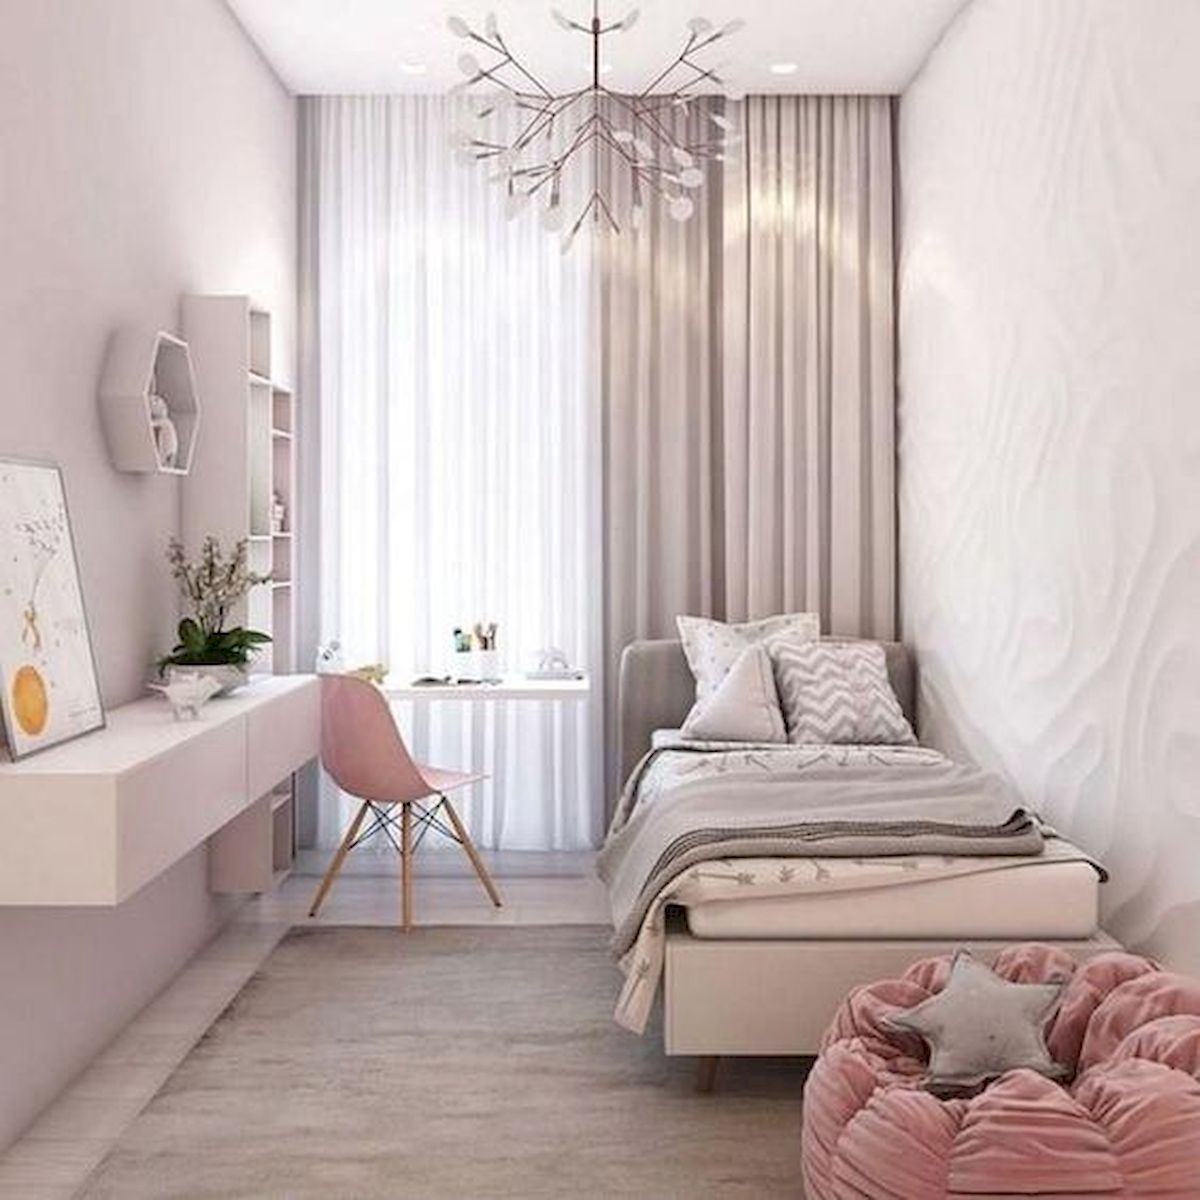 40 Cute Small Bedroom Design and Decor Ideas for Teenage Girl (17)